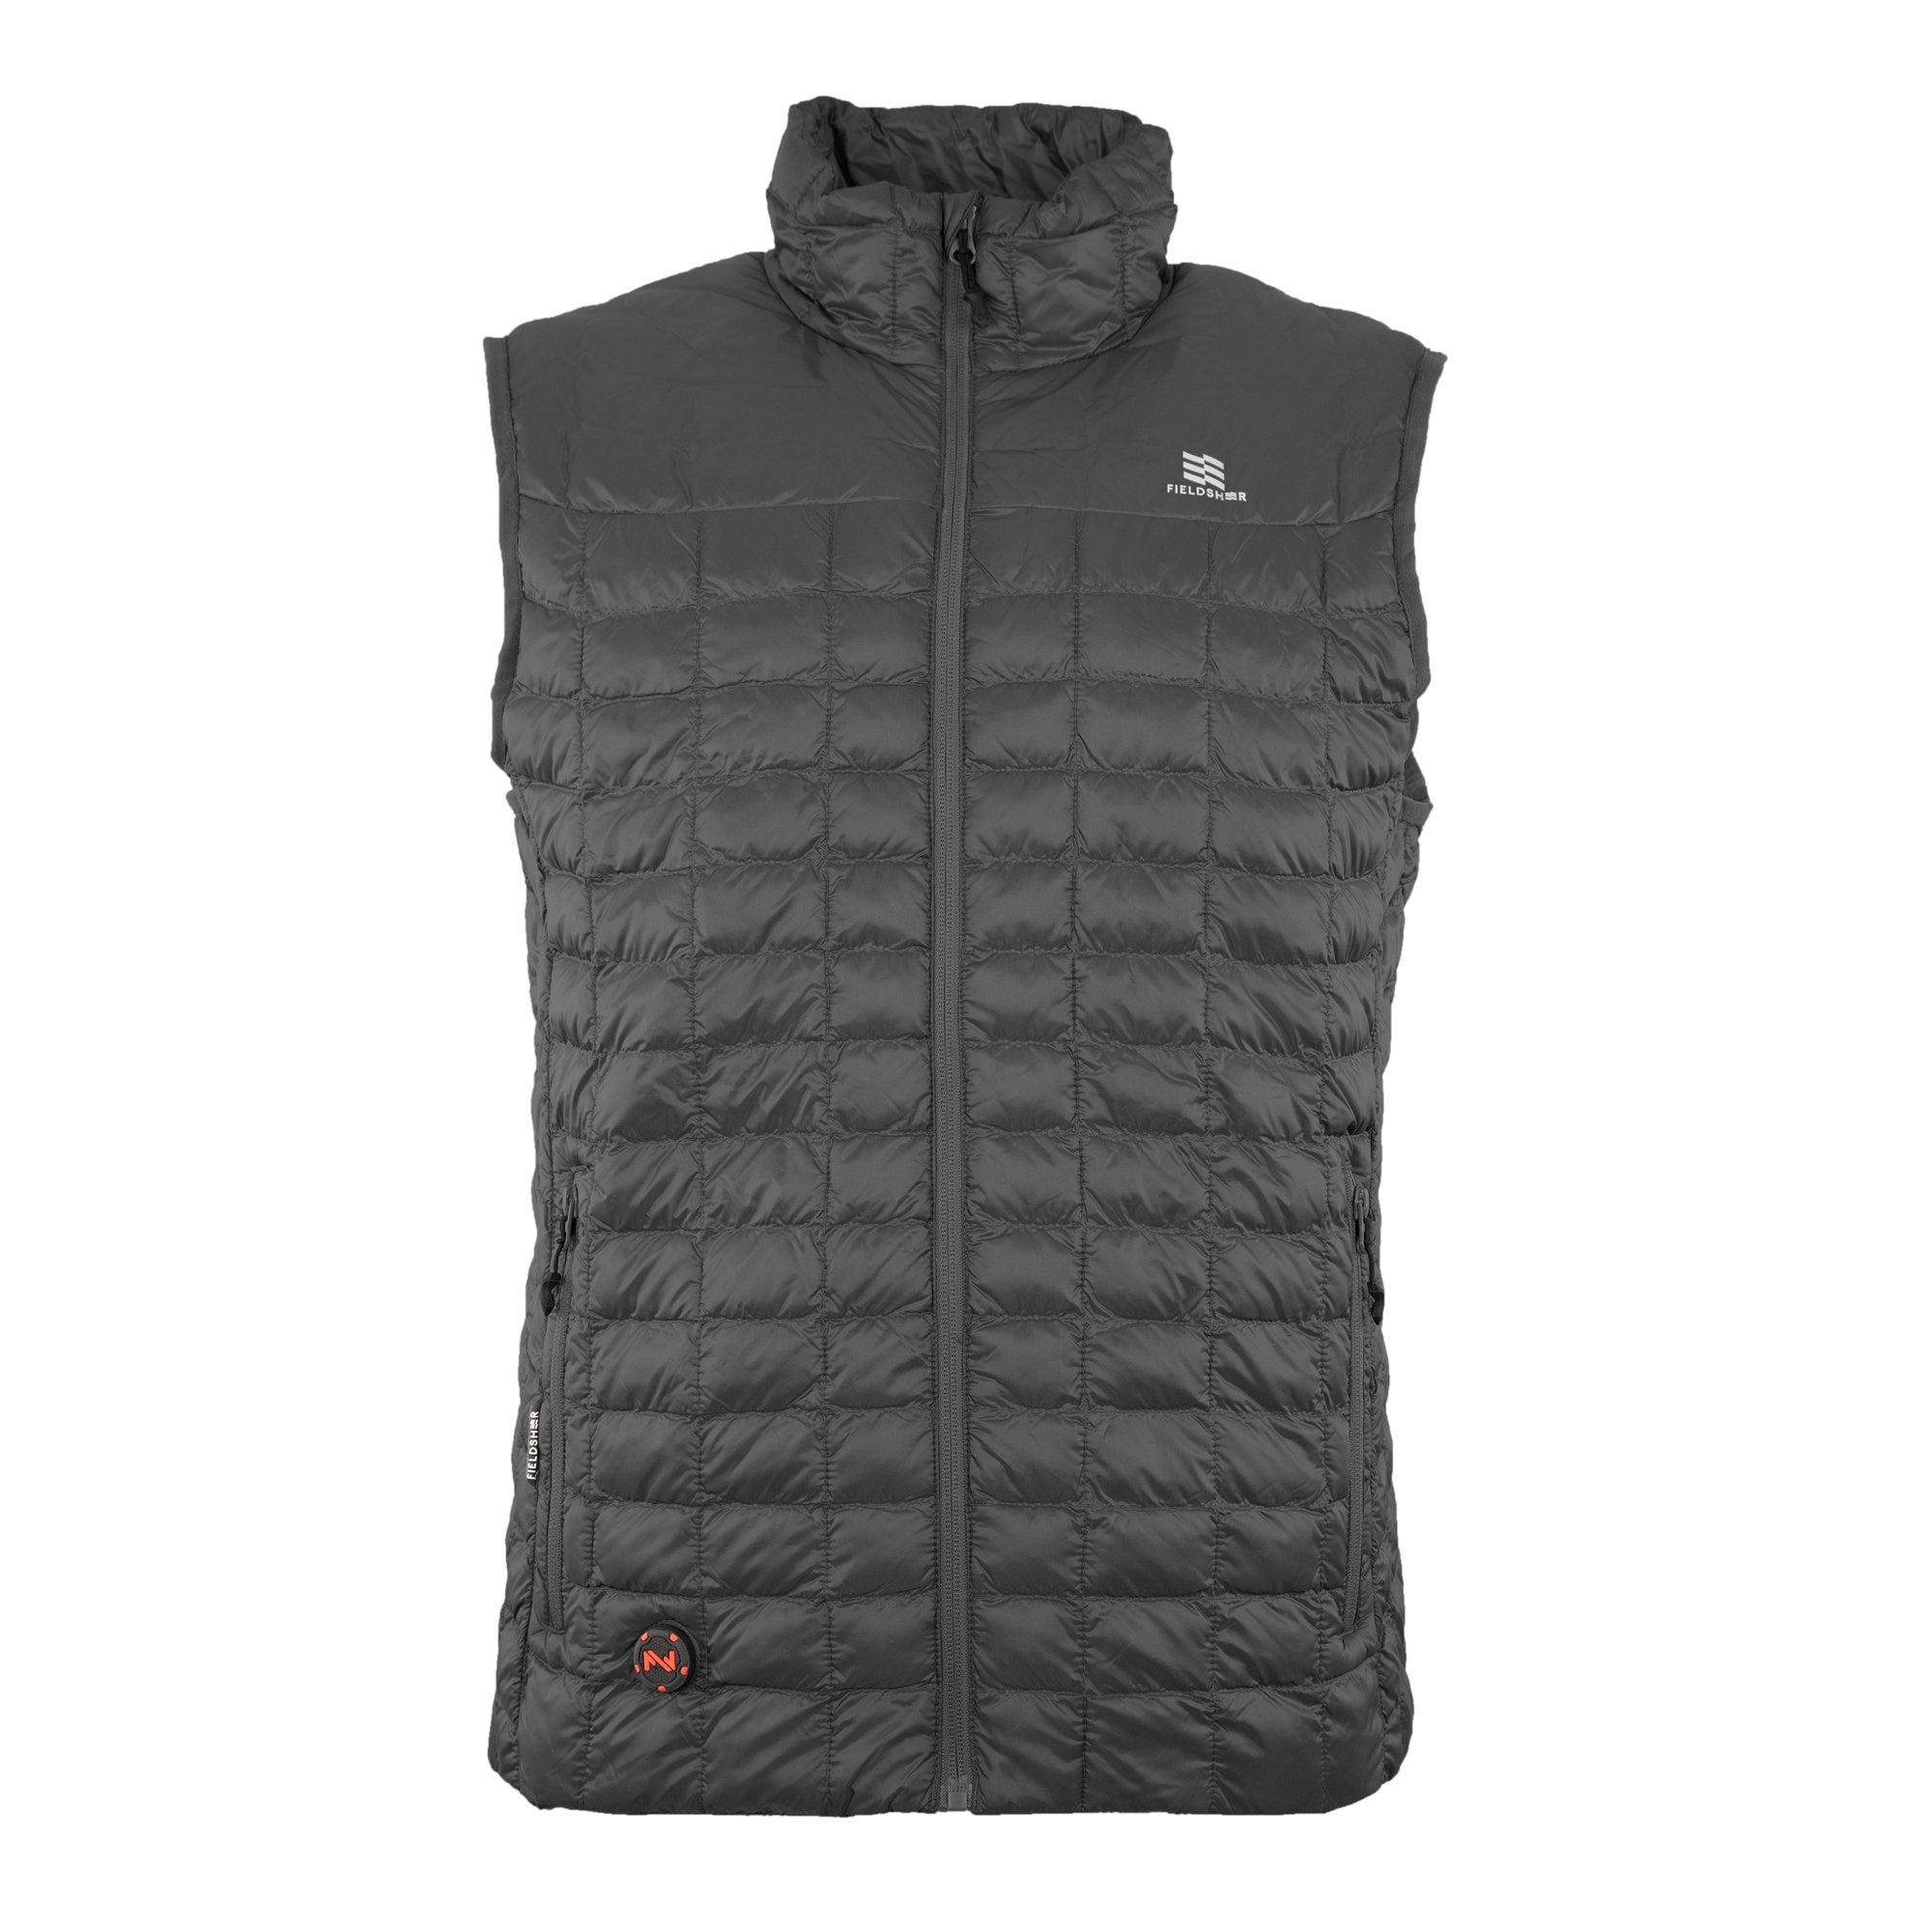 Fieldsheer Back Country Vest Men 3X